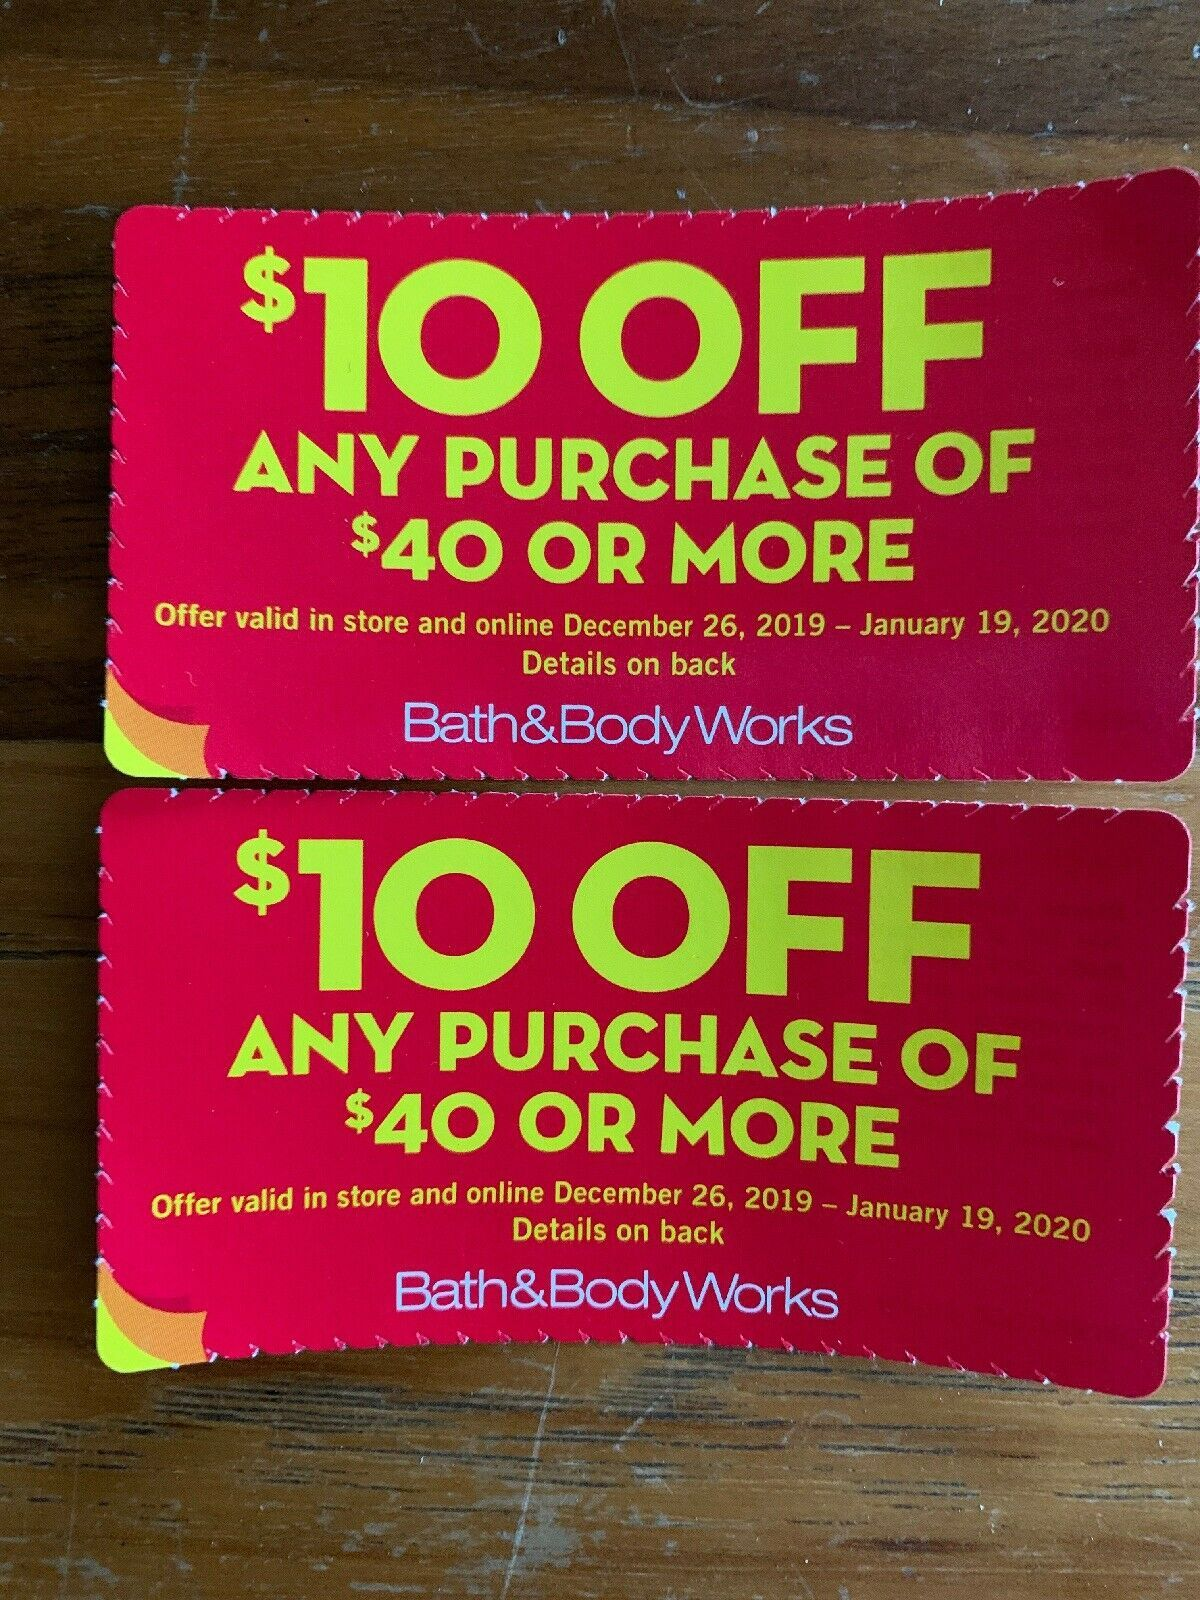 2 Bath And Body Works Coupons 10 Off 40 Or More Semi Annual Sale Bath And Body Works Body Works Bath And Body